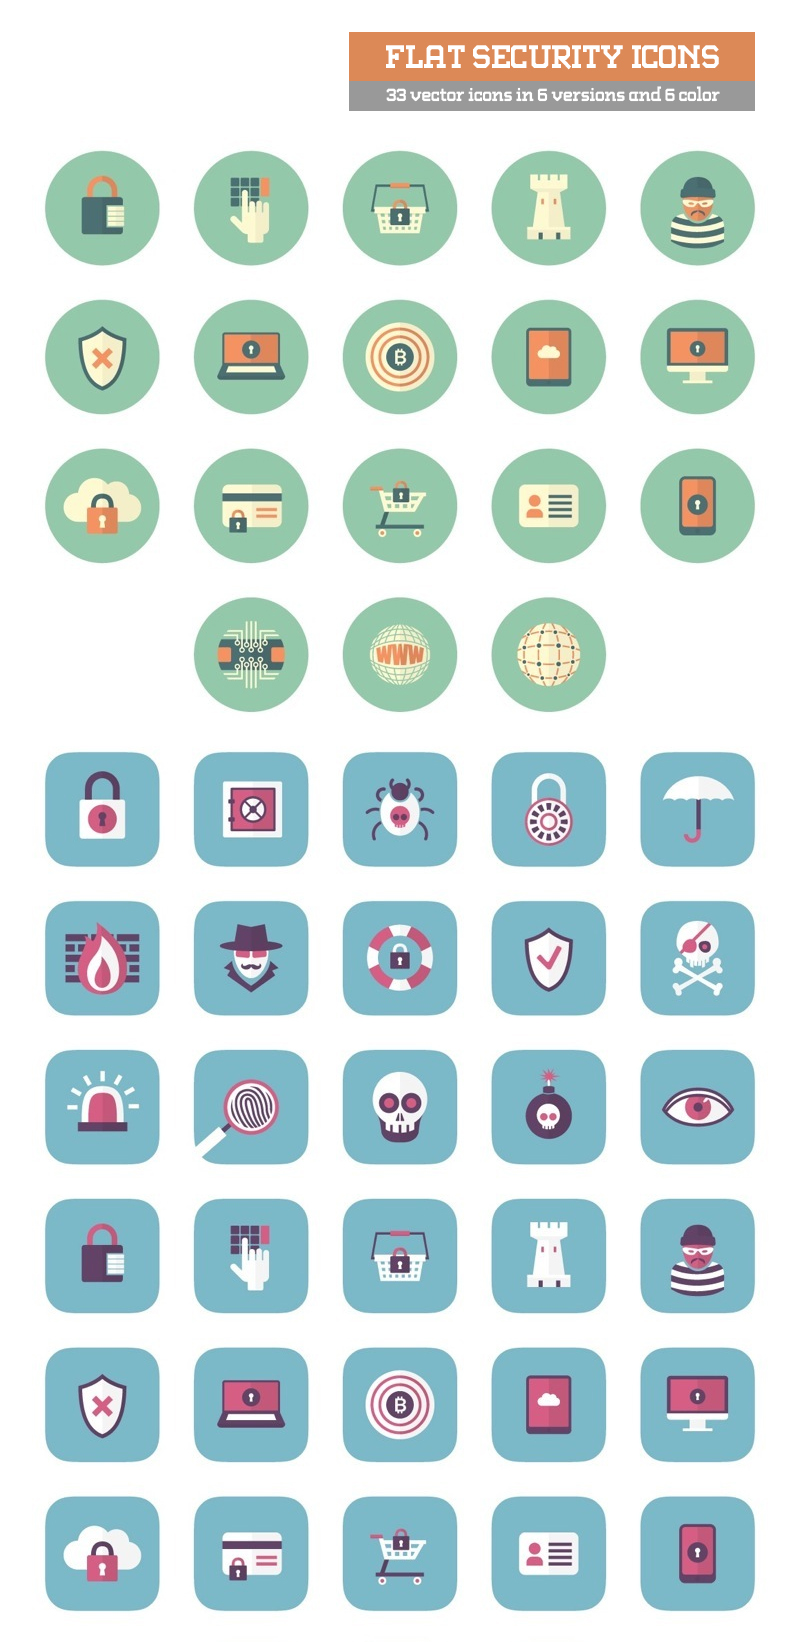 Flat Secutity 33 vector icons in 6 versions and 6 color